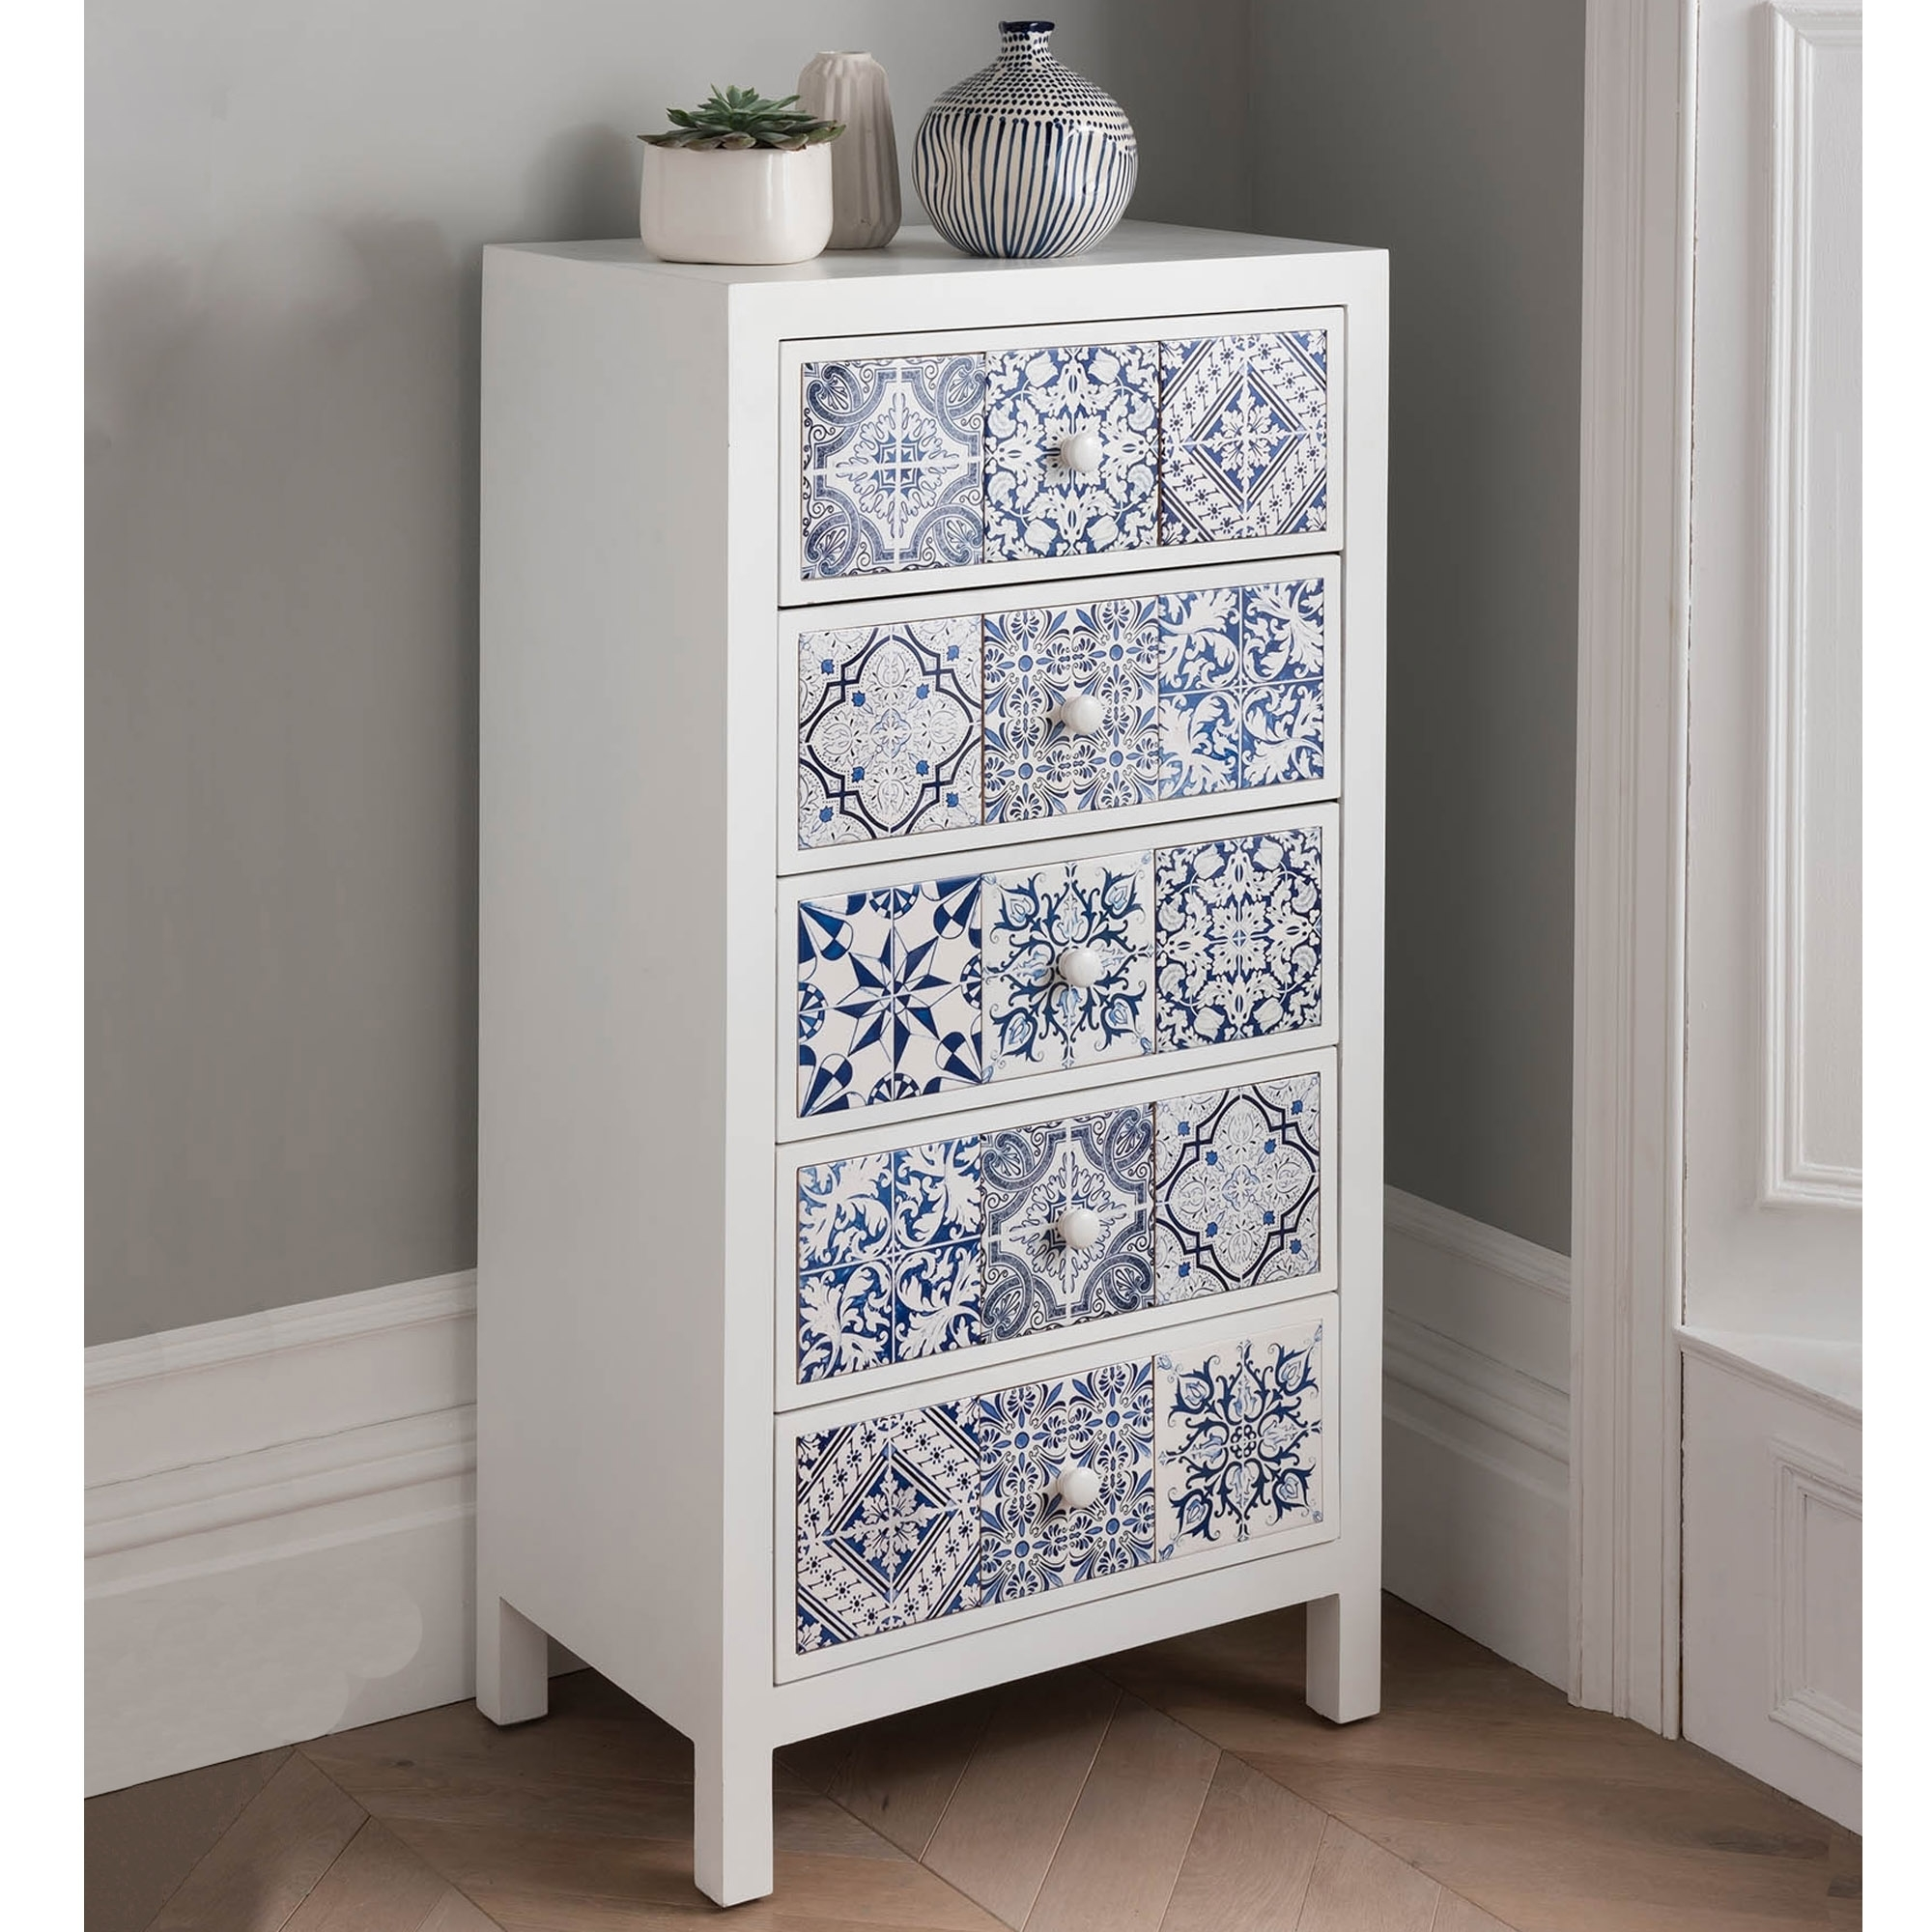 Patterned Tallboy Chest Chest Of Drawers Tallboy Chest